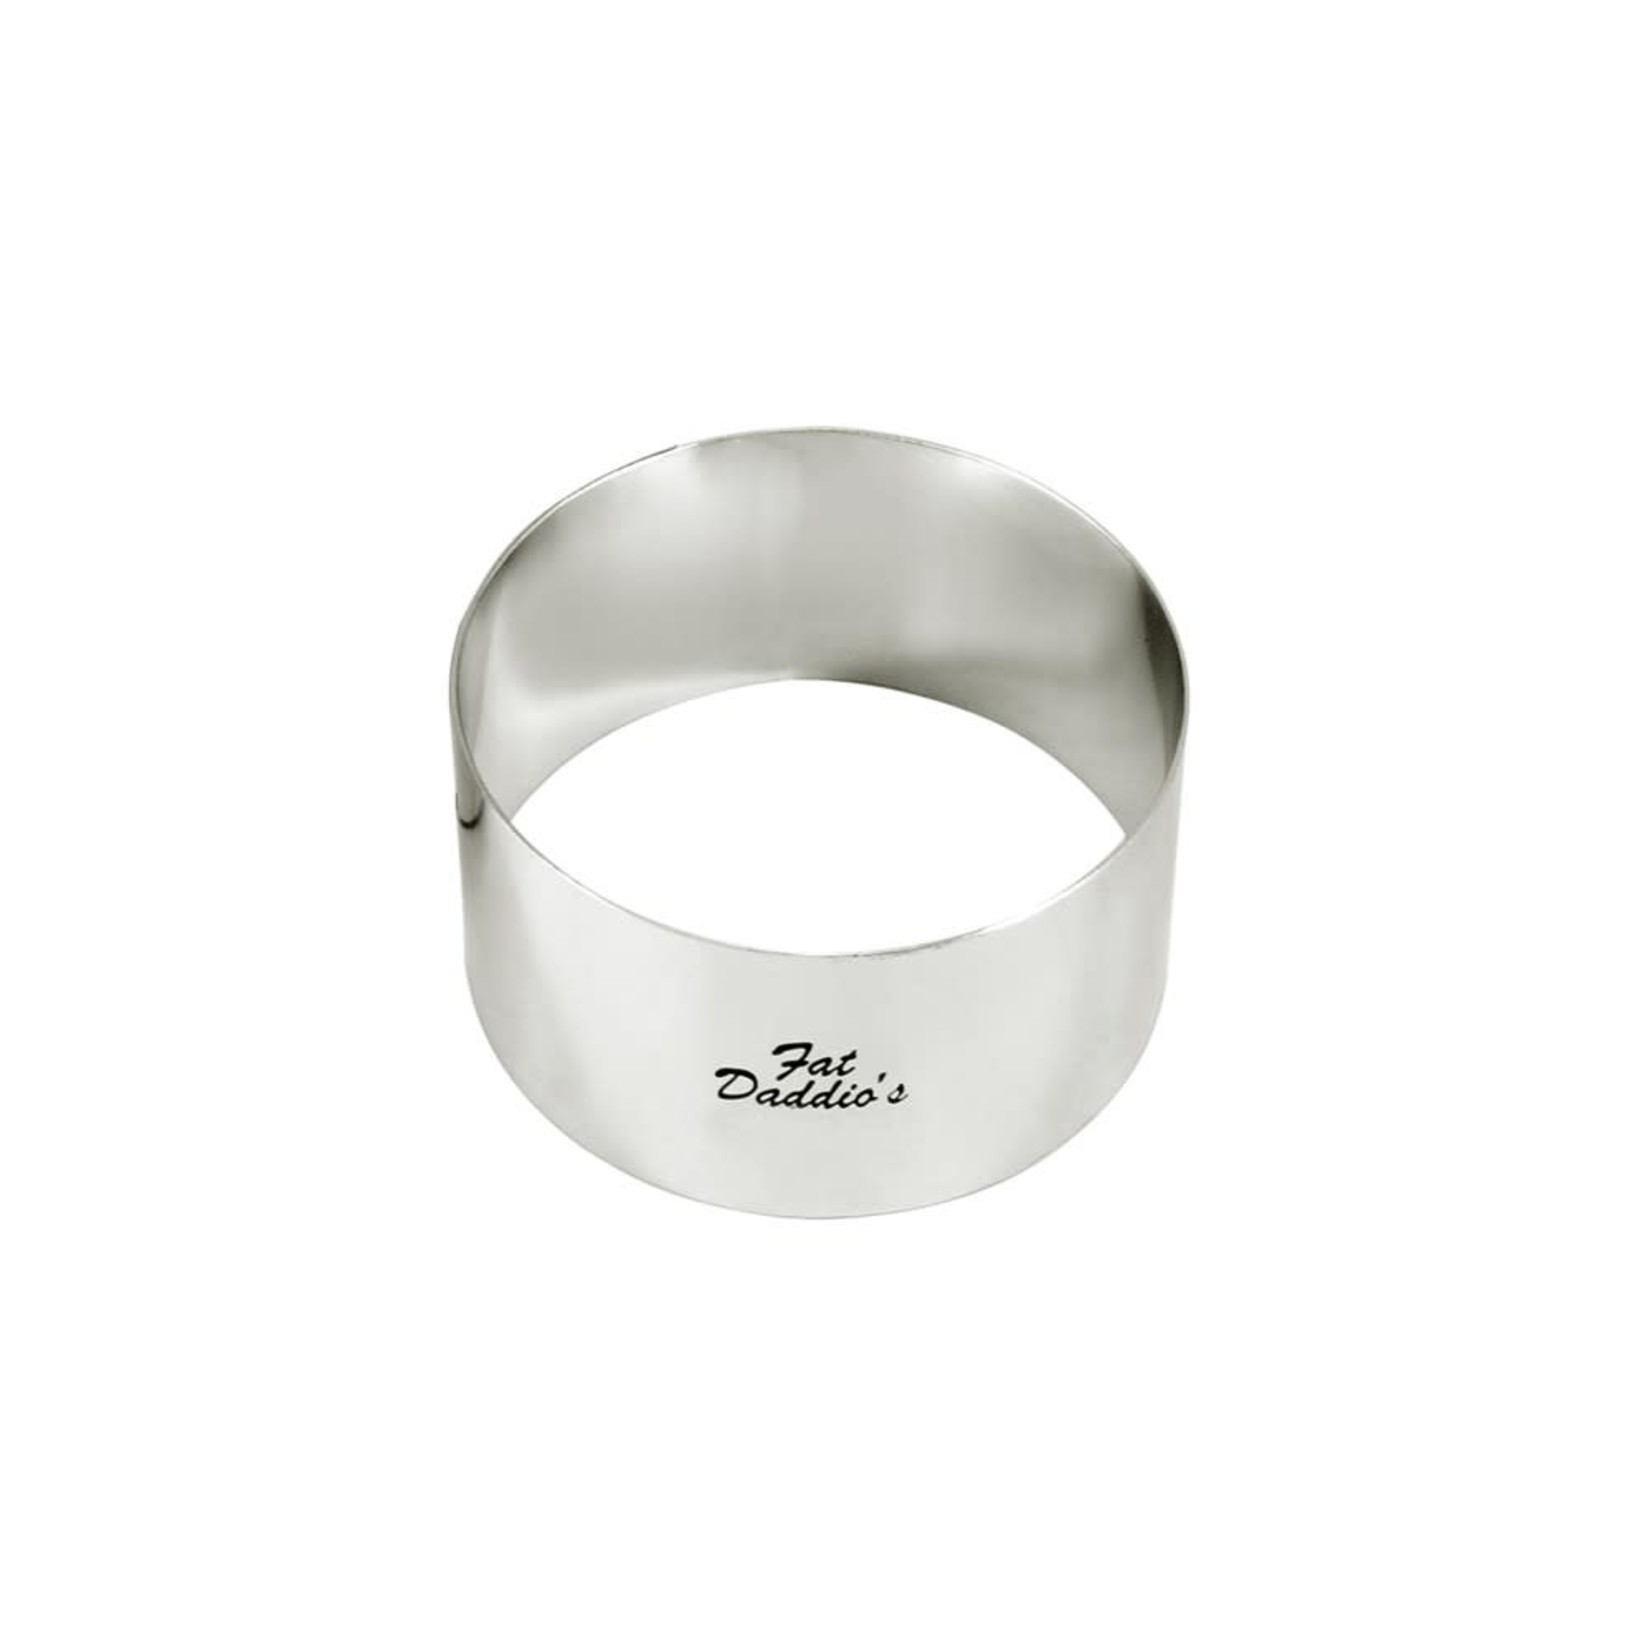 """Fat Daddios Fat Daddios - Ring Stainless Steel - 2 3/4 x 1 3/8"""", RRD-3036"""